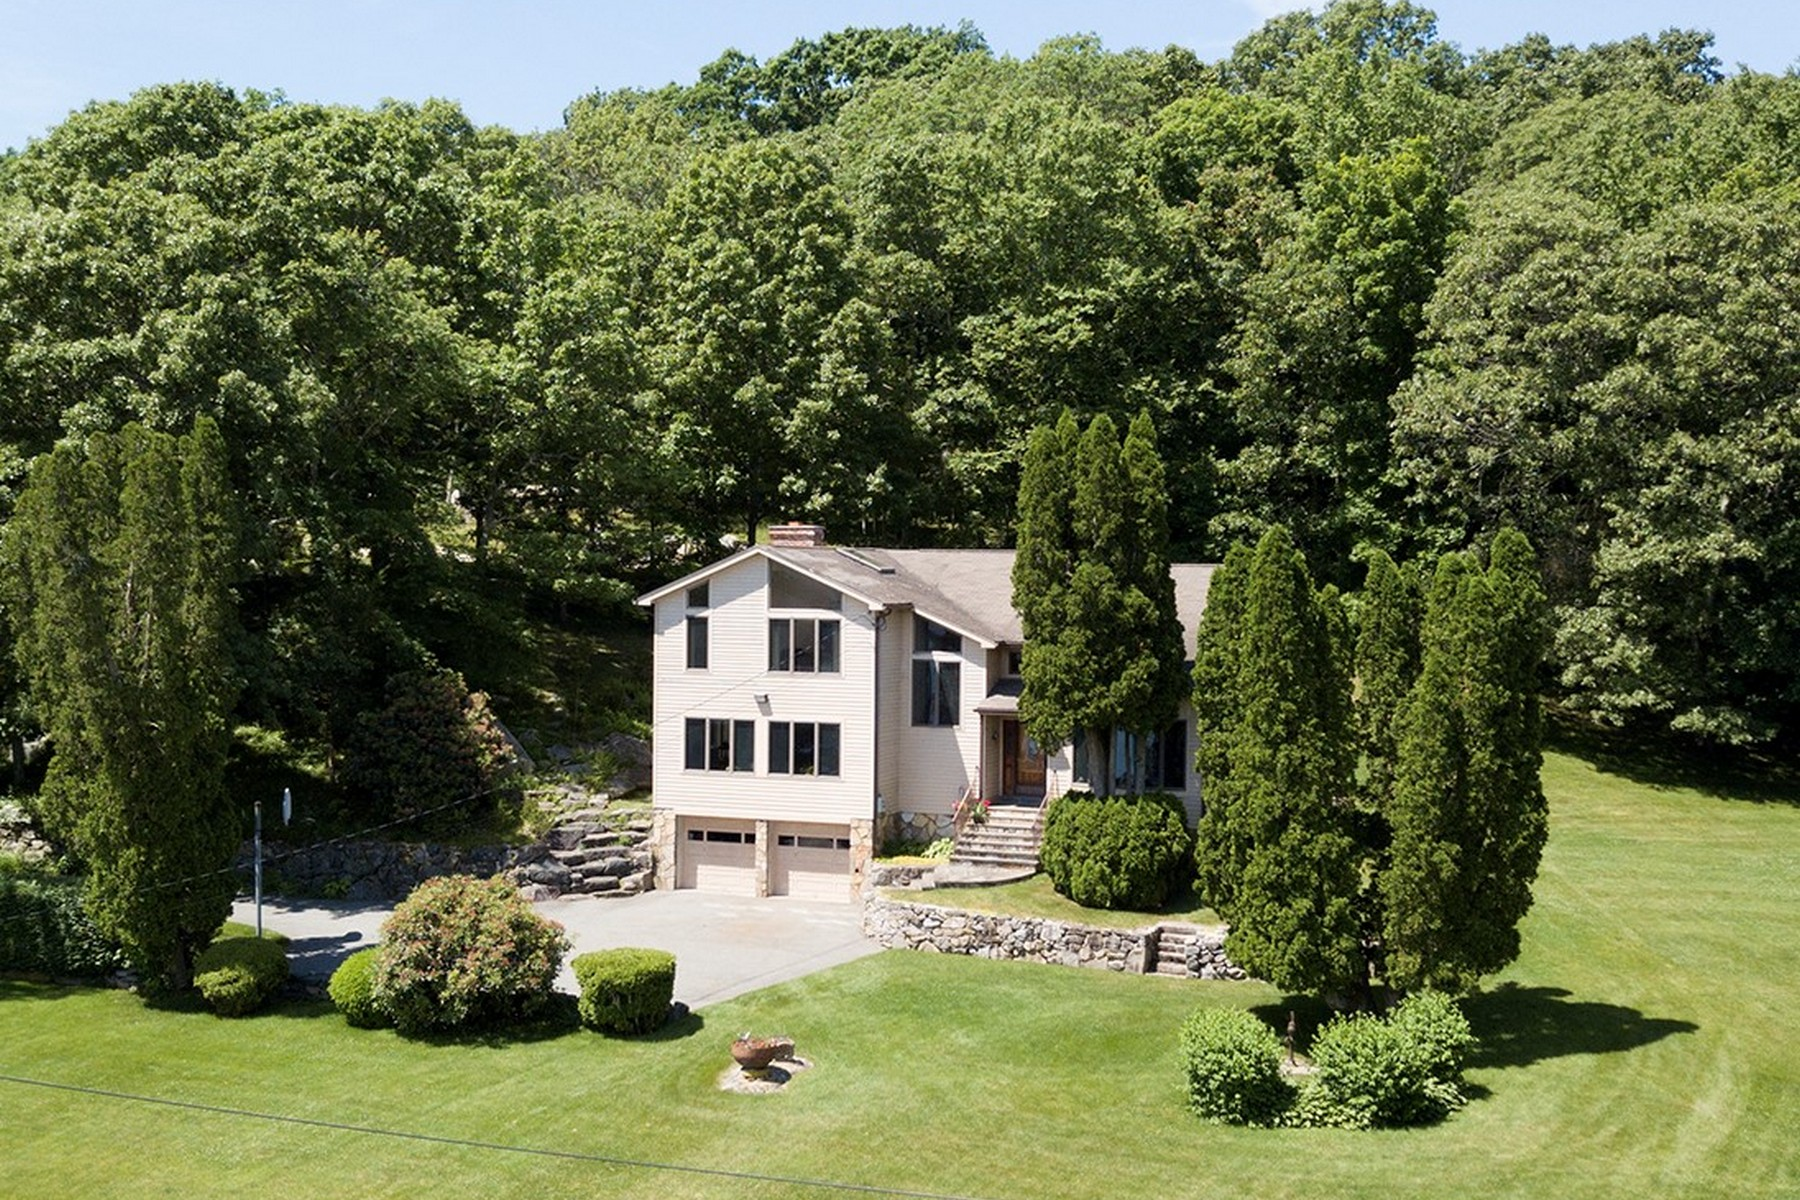 Single Family Homes for Sale at Enjoy the Views of the Mystic River 743a River Road Groton, Connecticut 06355 United States